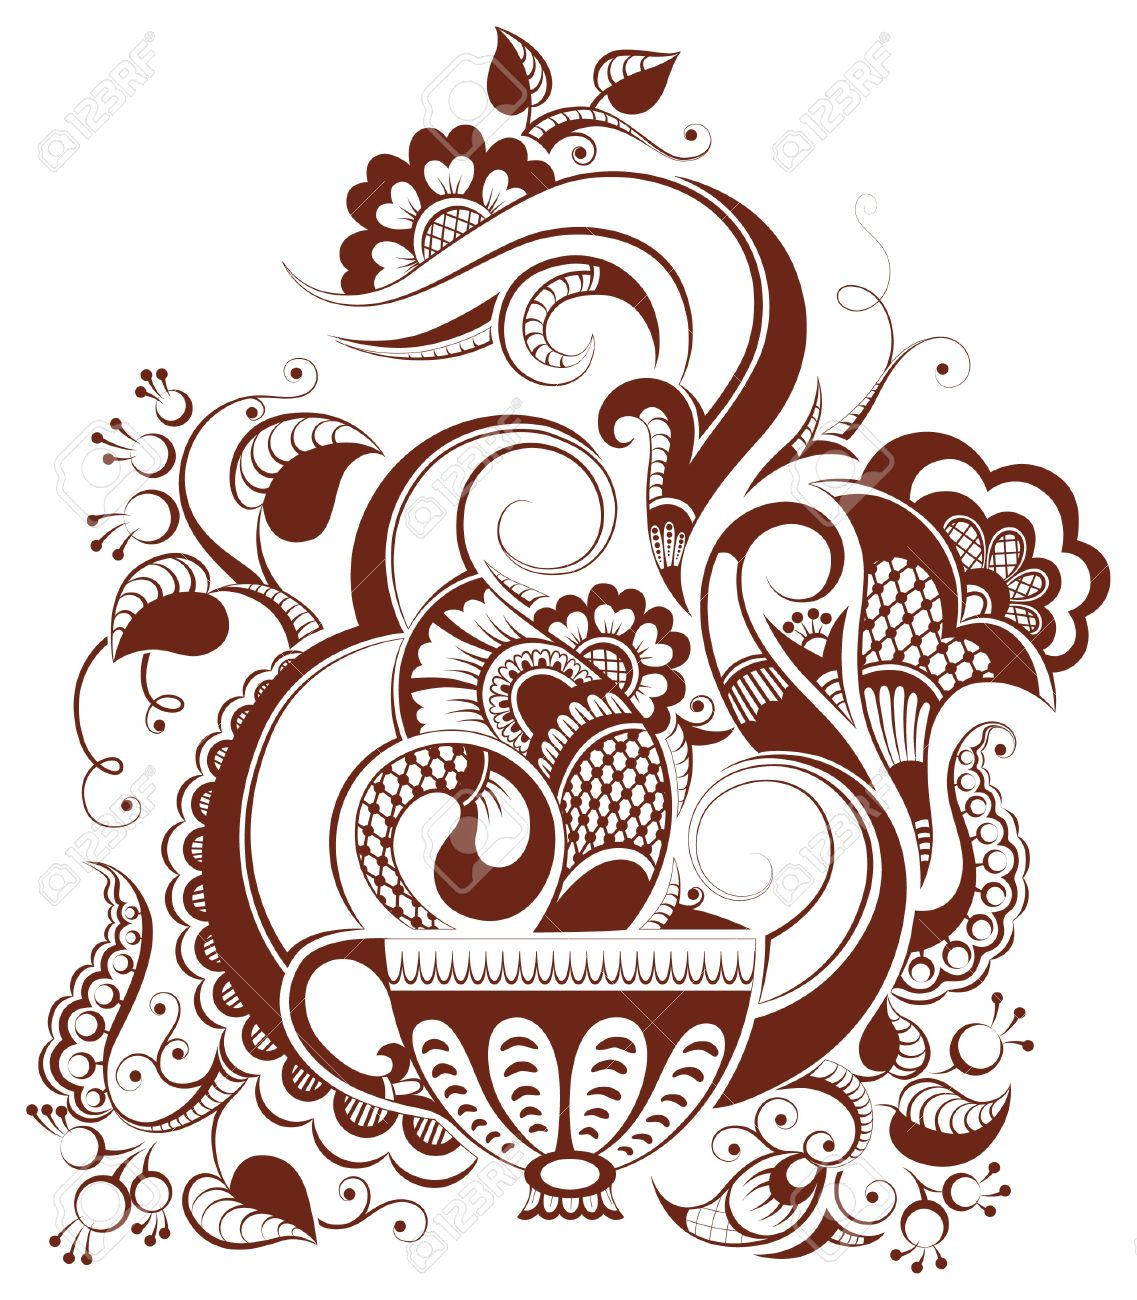 cup of tea with floral design (in mehndi style) - 14477228